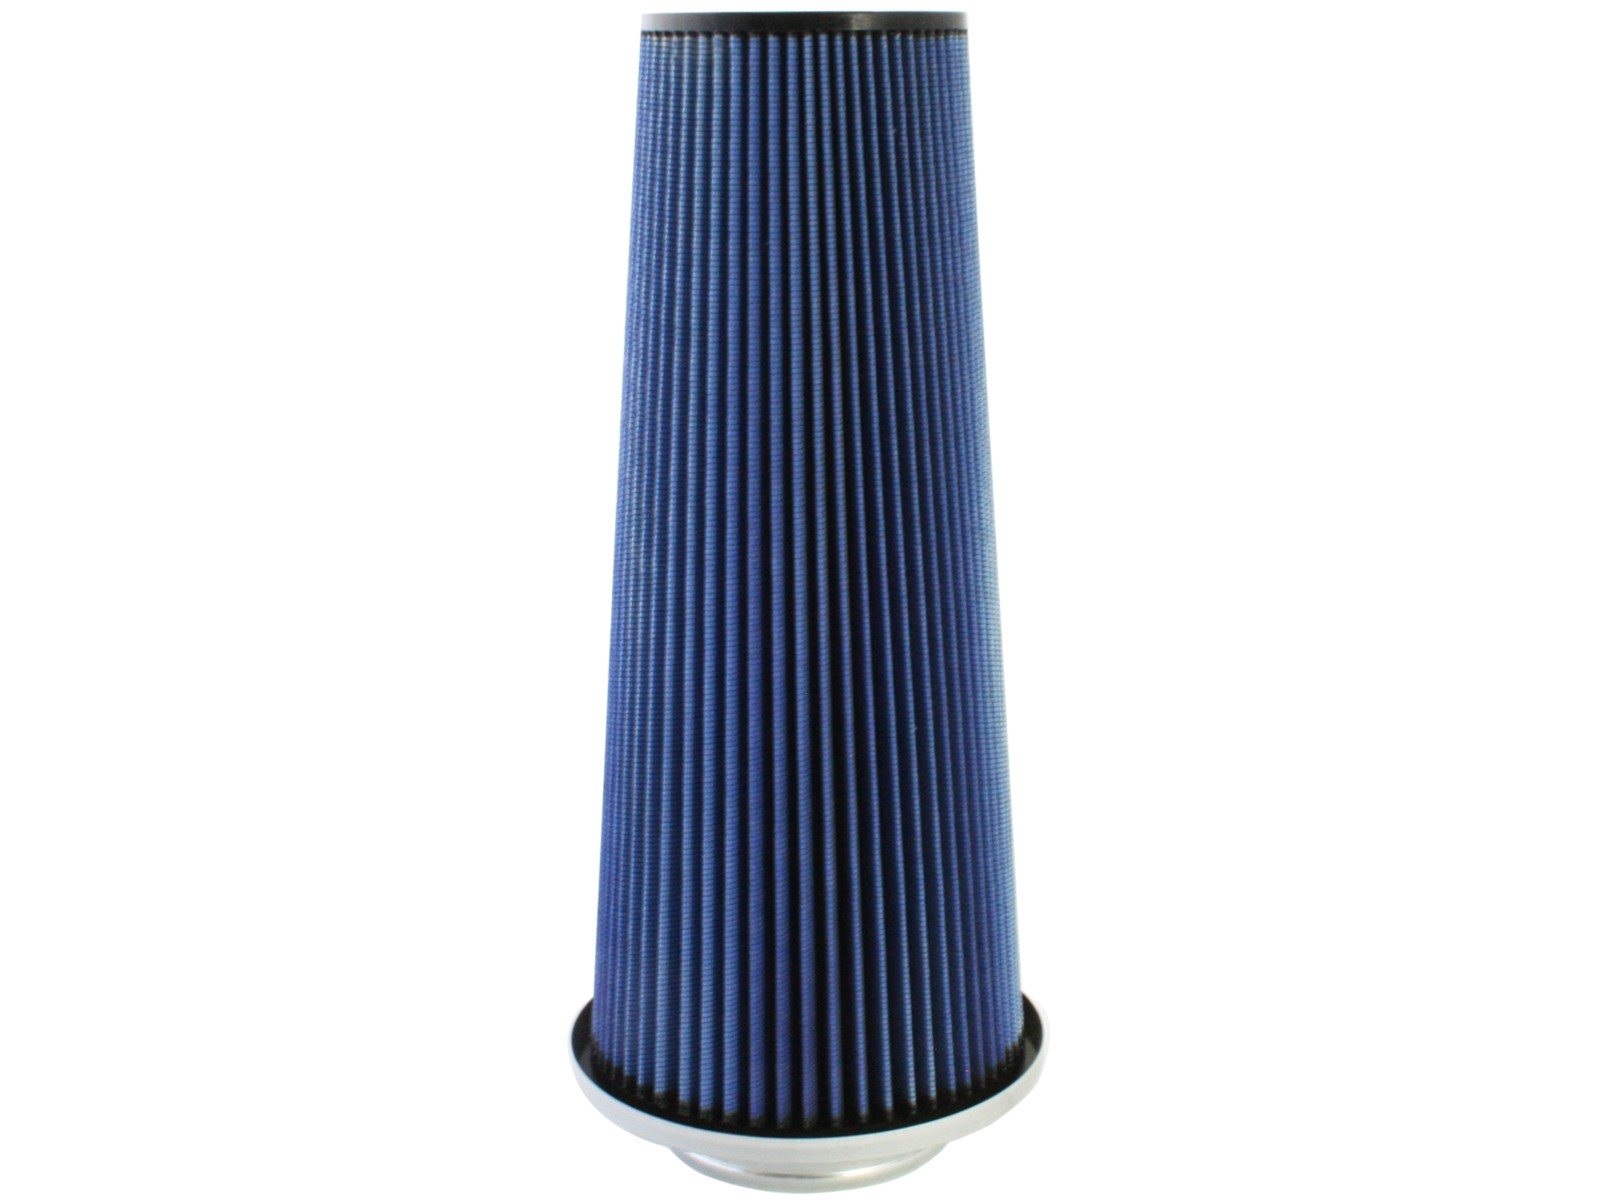 aFe POWER 70-50004 ProHDuty Pro 5R Air Filter for 70-50104